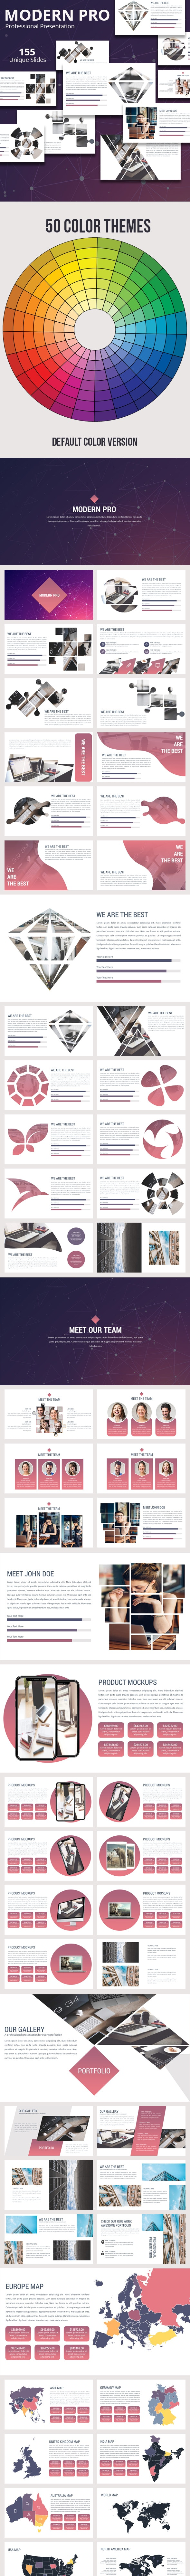 Modern Pro Powerpoint Presentation Template - Business PowerPoint Templates